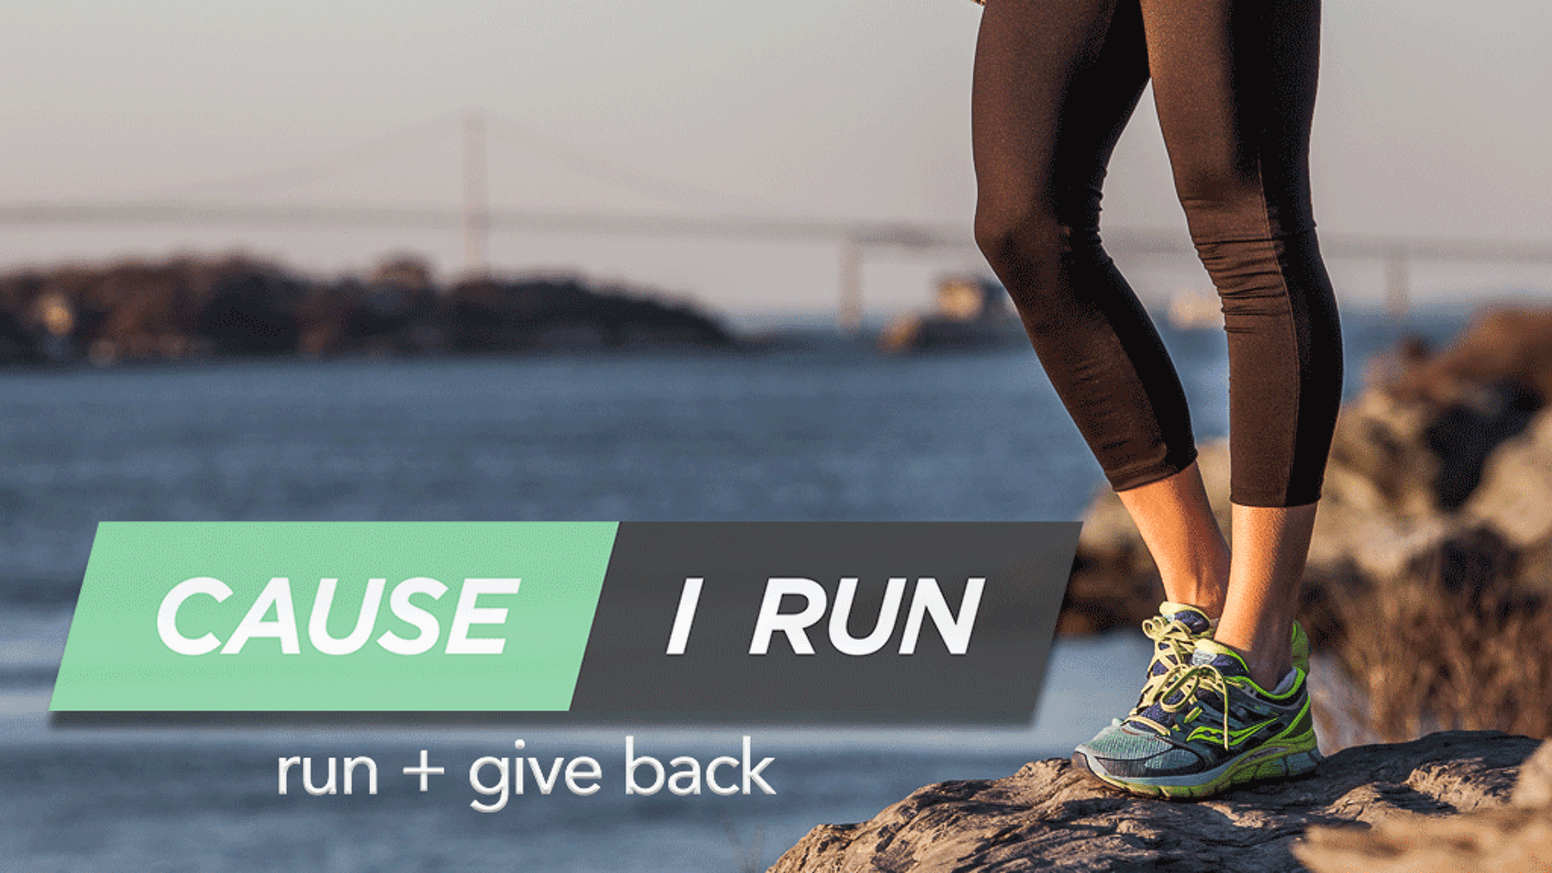 Sustainable activewear, made in America. 10% of each purchase goes to a cause.